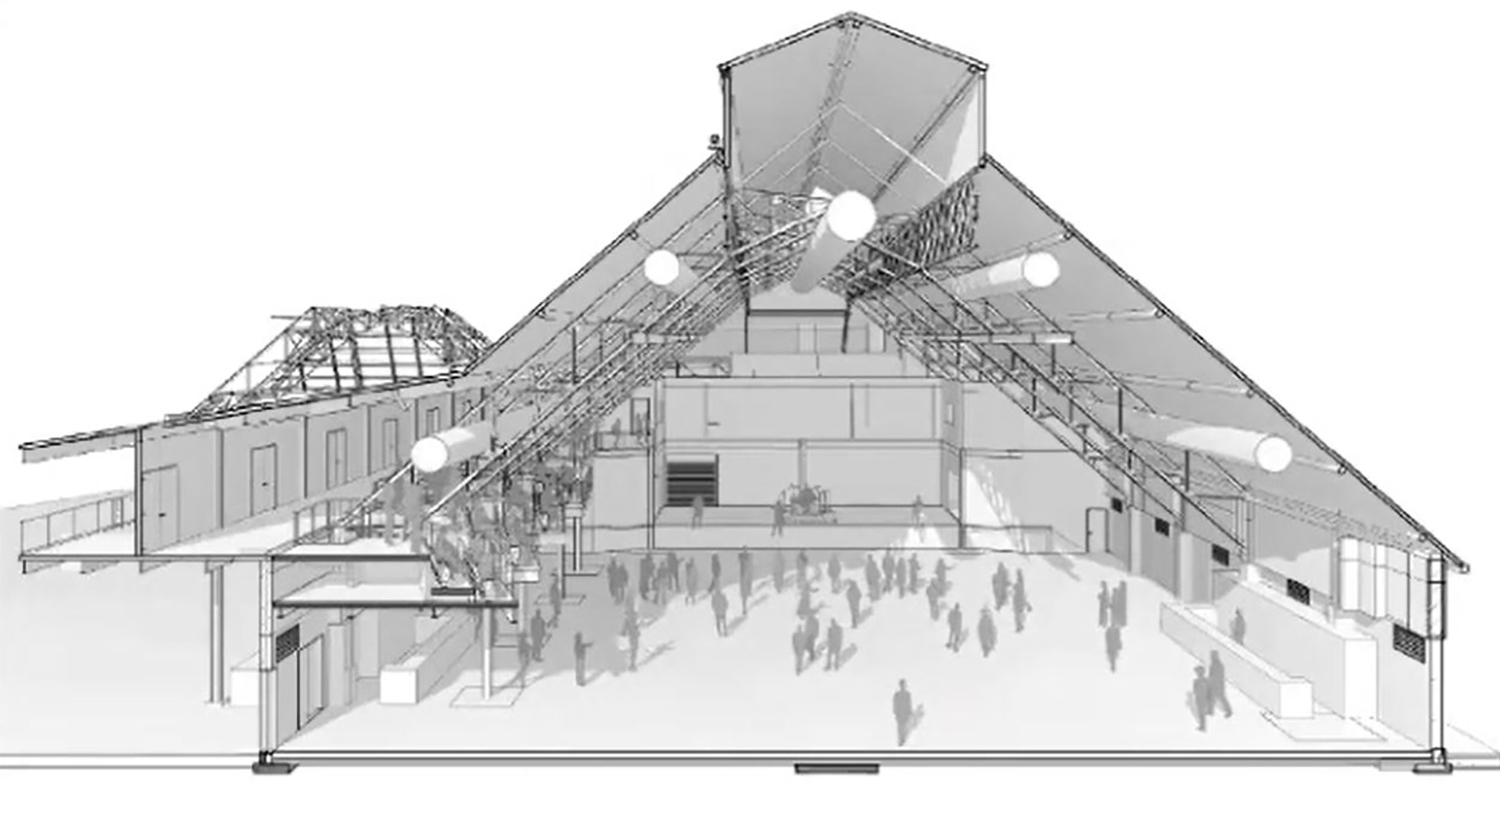 Southern-Facing Shed Building Section. Drawing by Lamar Johnson Collaborative